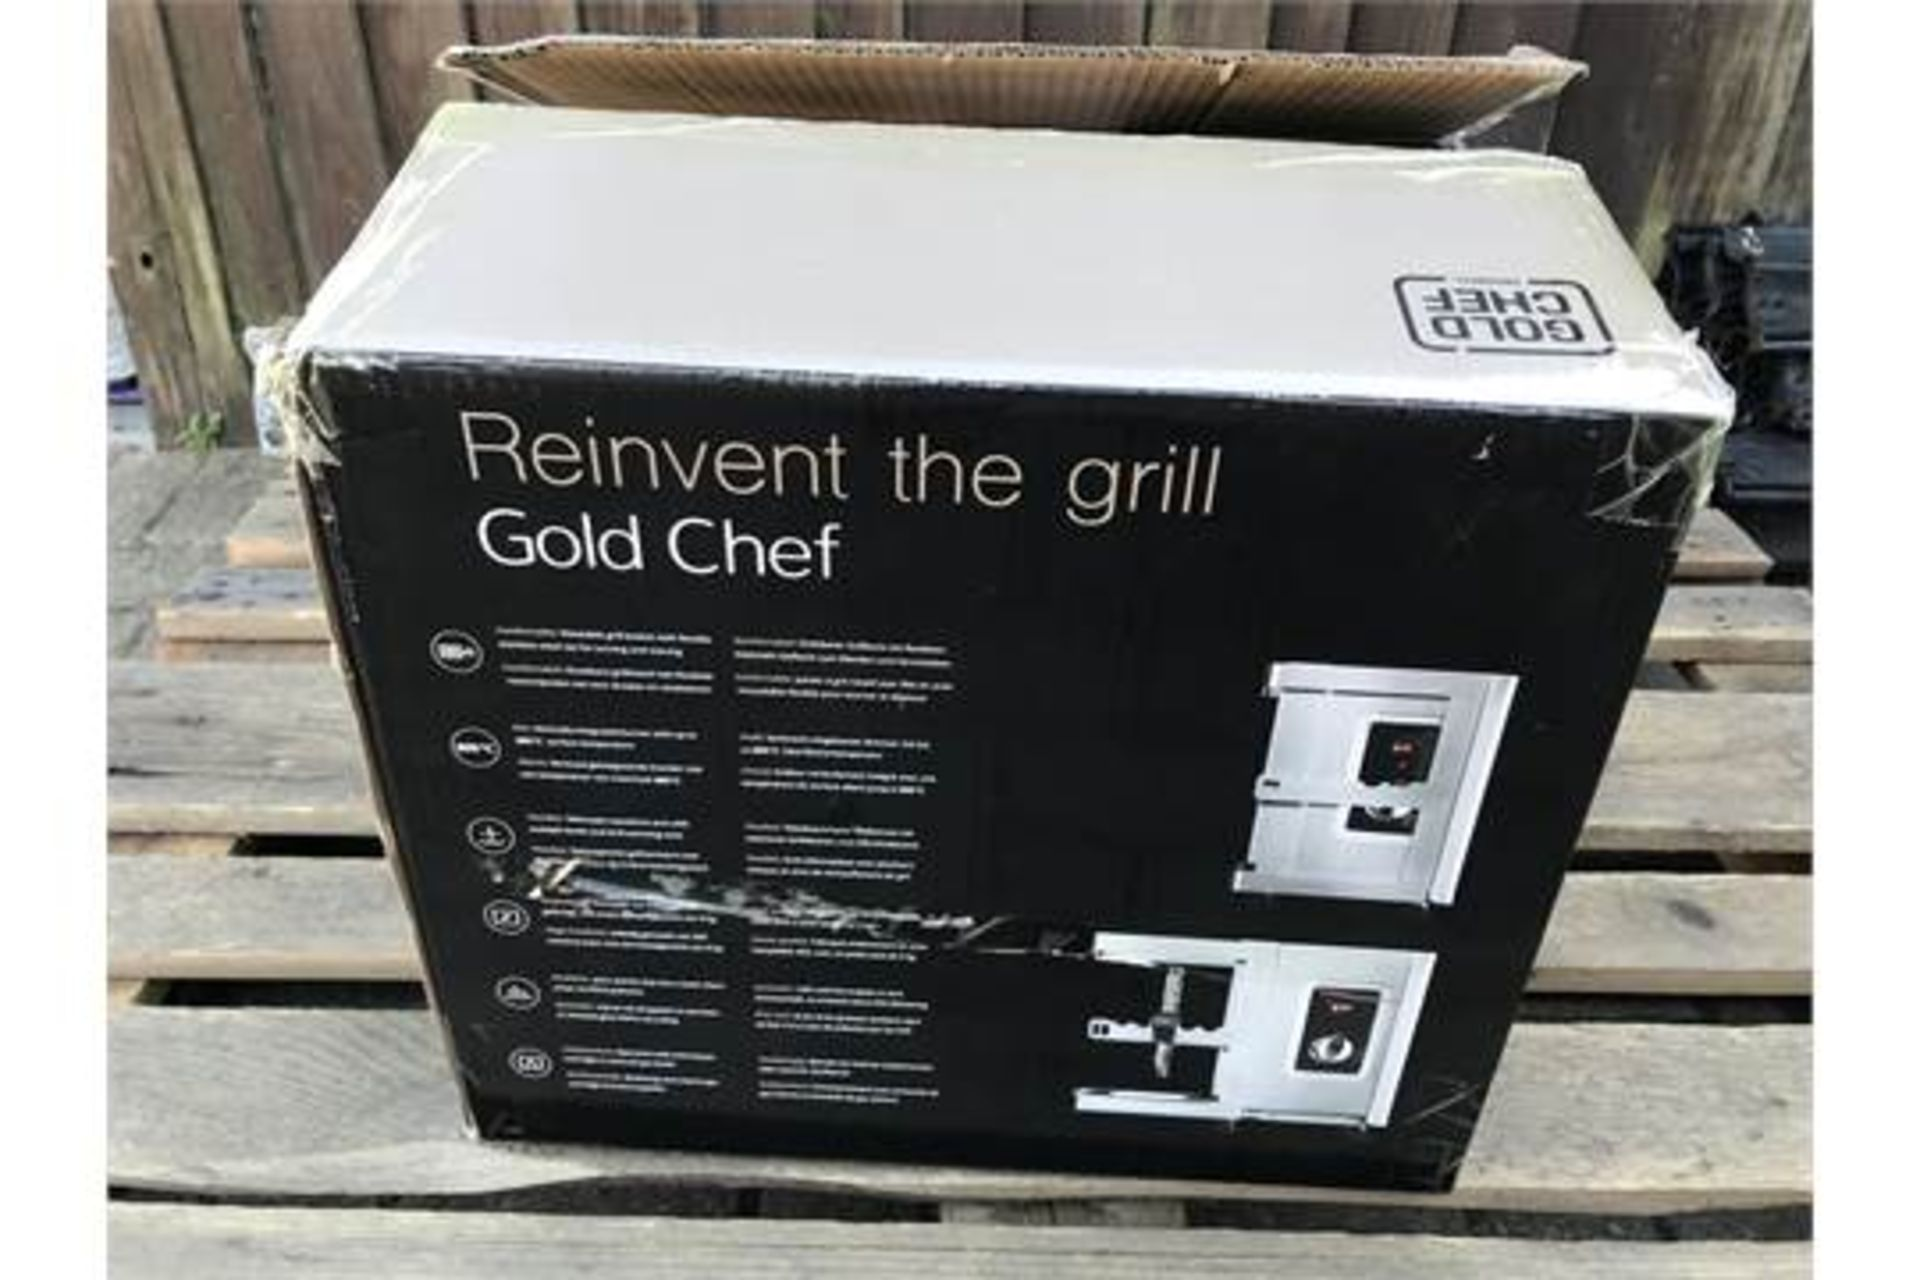 GOLD CHEF TWO 800C ROTISSERIE GRILL **BRAND NEW** - Image 4 of 5